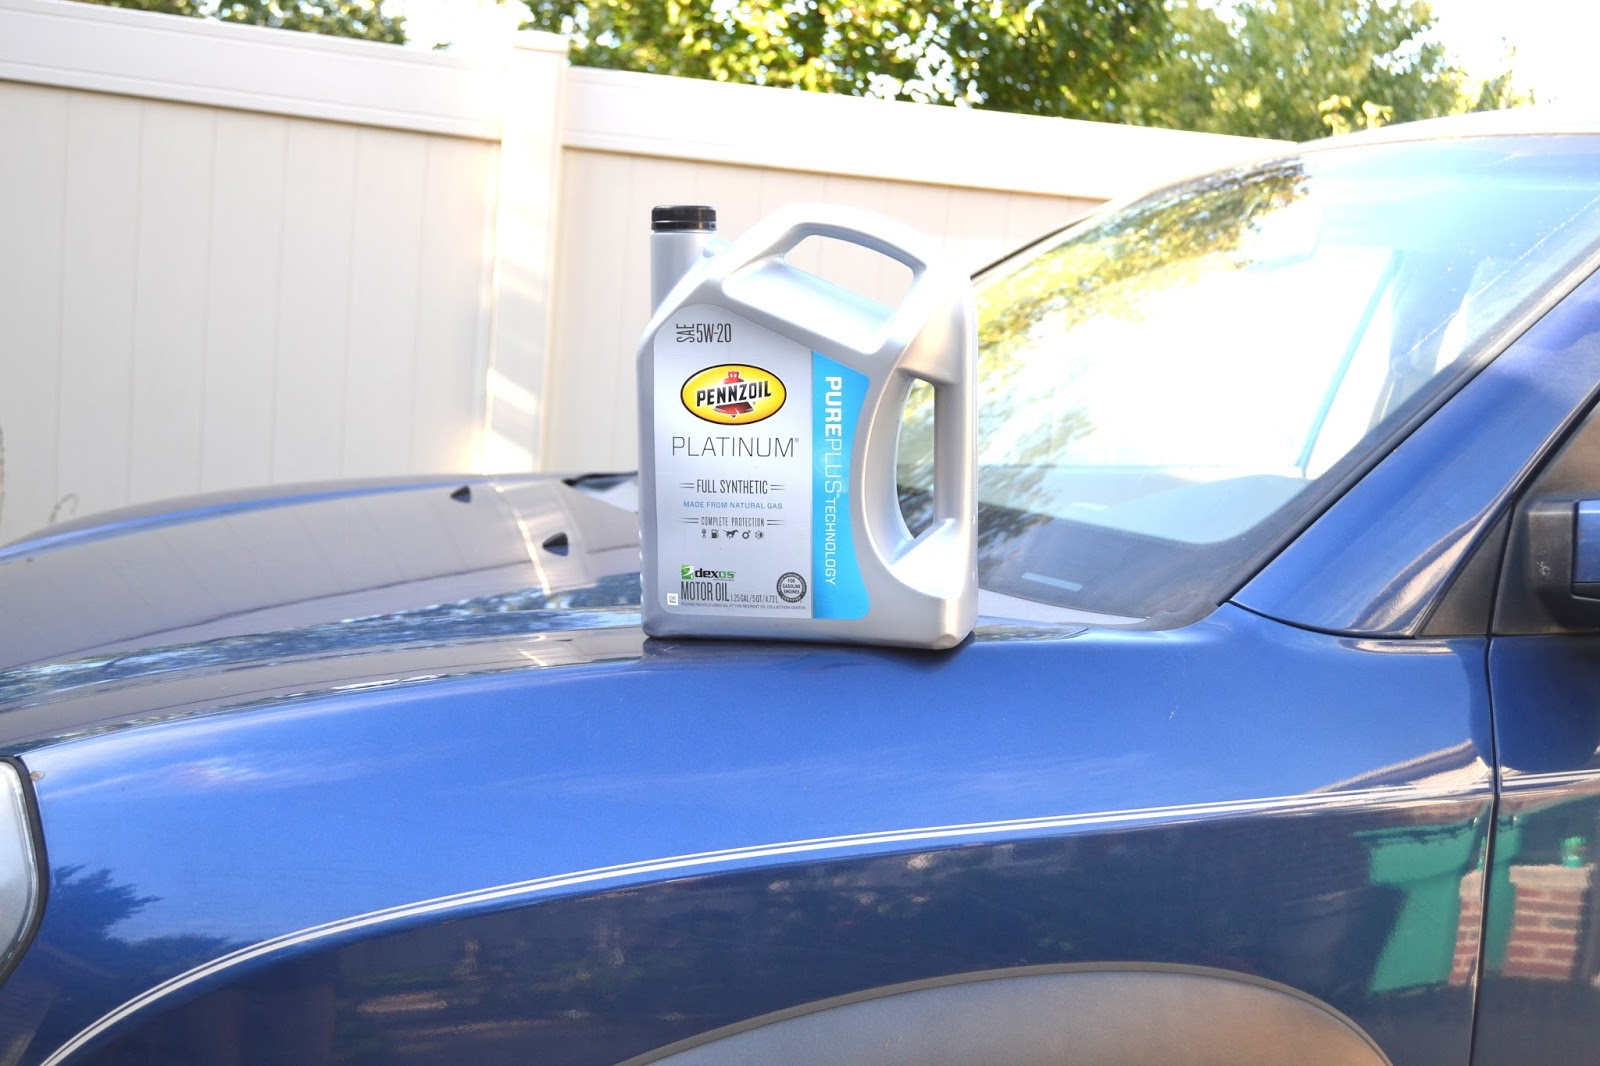 How to do your own oil change the nutritionist reviews for our oil change we used pennzoil platinum full synthetic motor oil which we picked up at my husbands former employer autozone solutioingenieria Choice Image